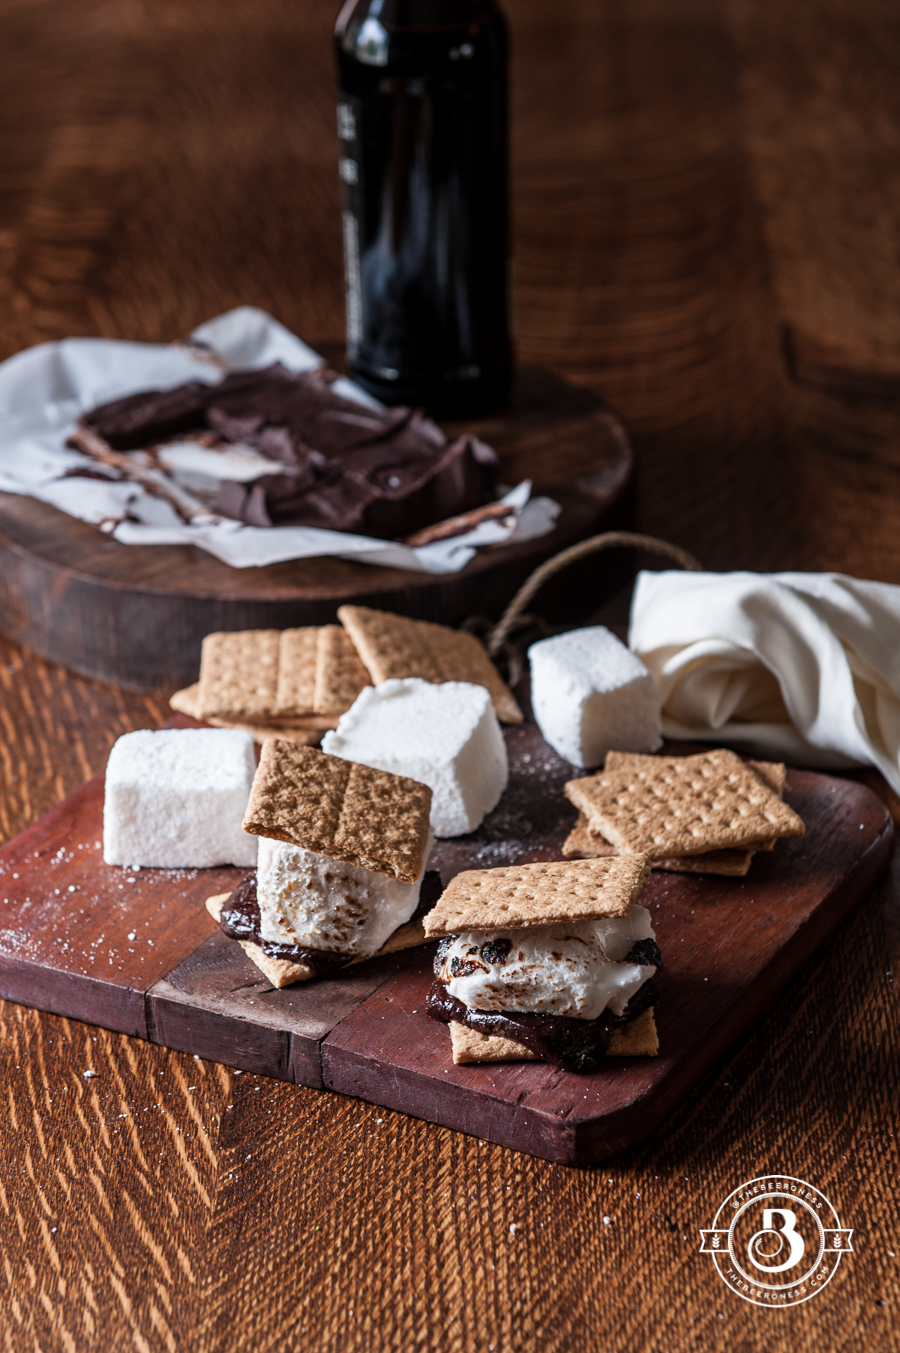 Beer S'Mores Stout Chocolate Bar and Belgian Ale Marshmallows2